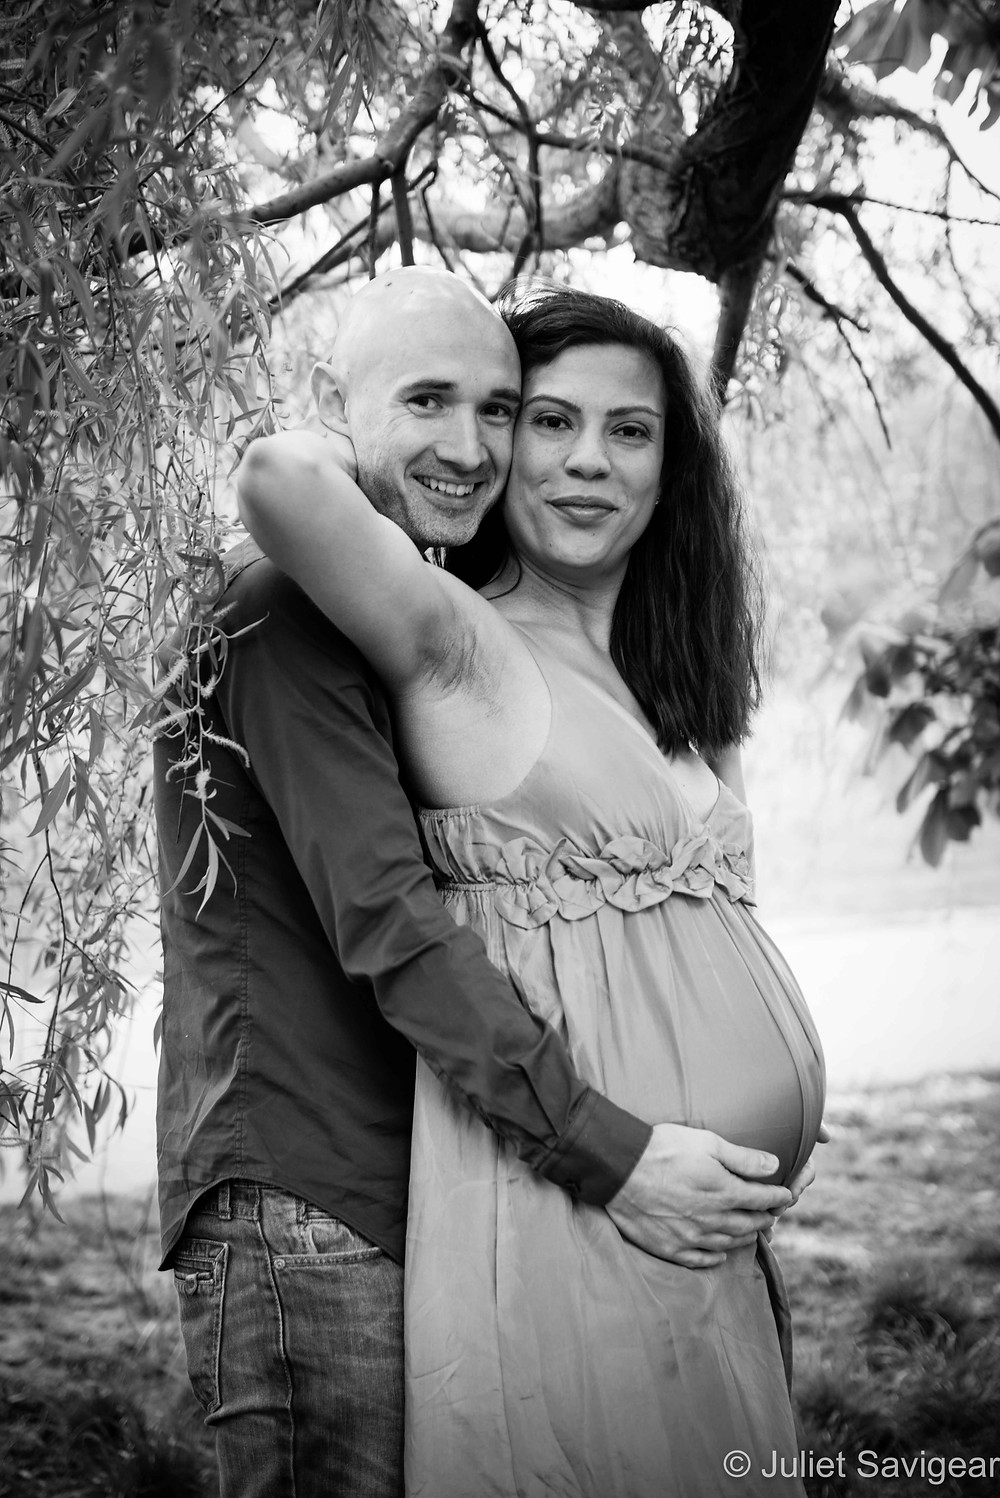 Under The Willow Tree - Maternity Photography, Tooting Common